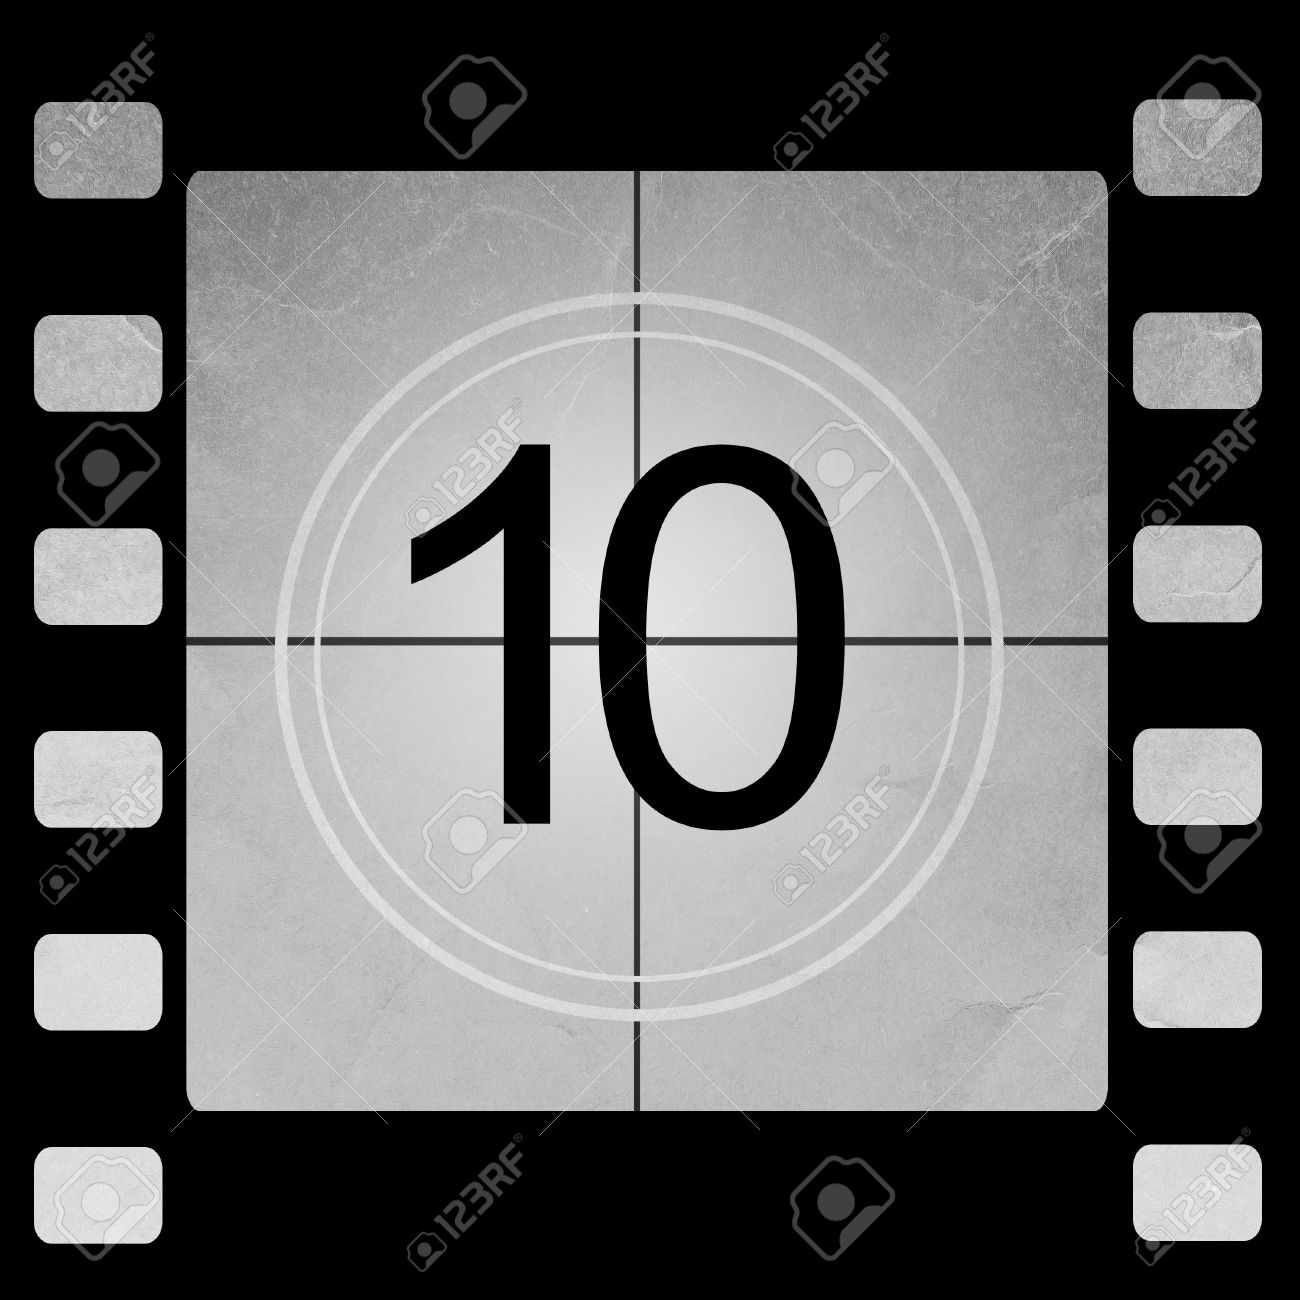 Free countdown clipart image free download 888 Movie Countdown Stock Vector Illustration And Royalty Free ... image free download